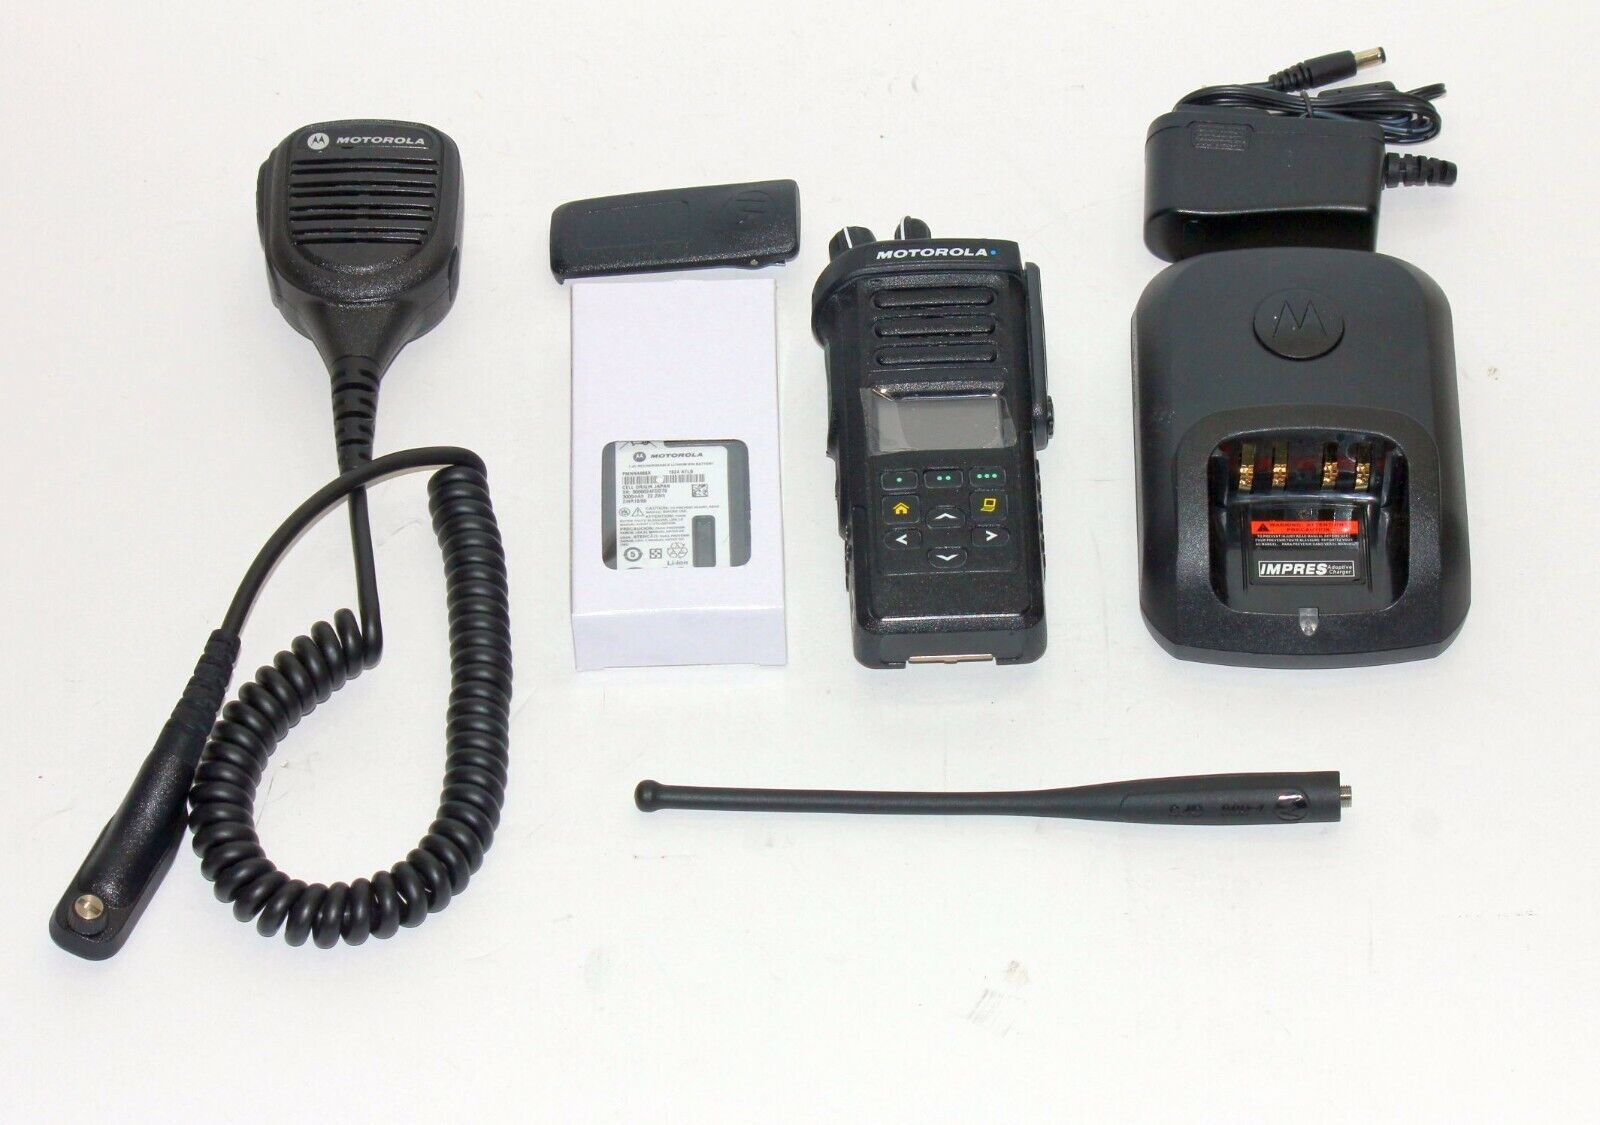 TESTED MOTOROLA APX APX4000 DIGITAL RADIO 700/800 MHZ P25 TDMA AES DES BLUETOOTH. Buy it now for 1459.99